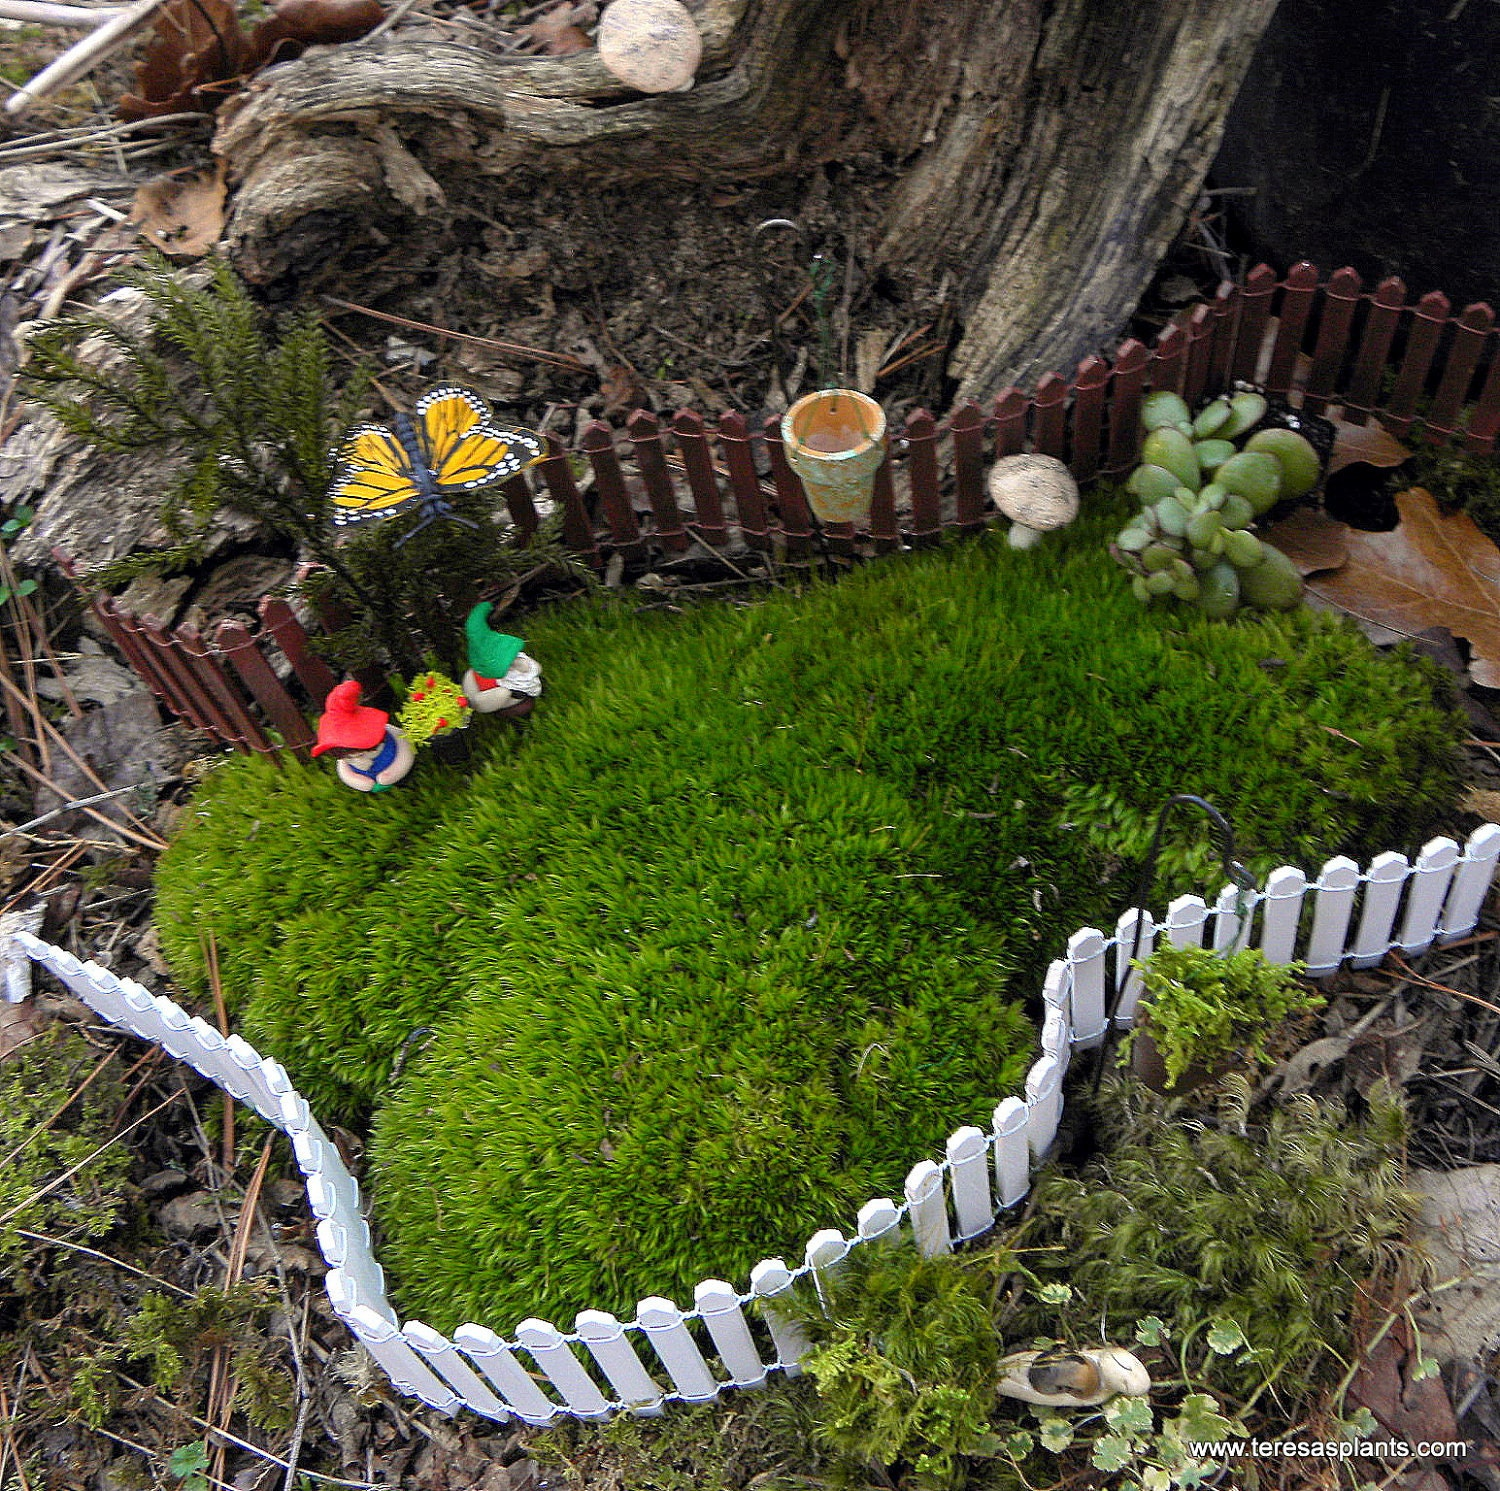 Fairy Garden Decor Fairy Garden Decor Ebay on Sich